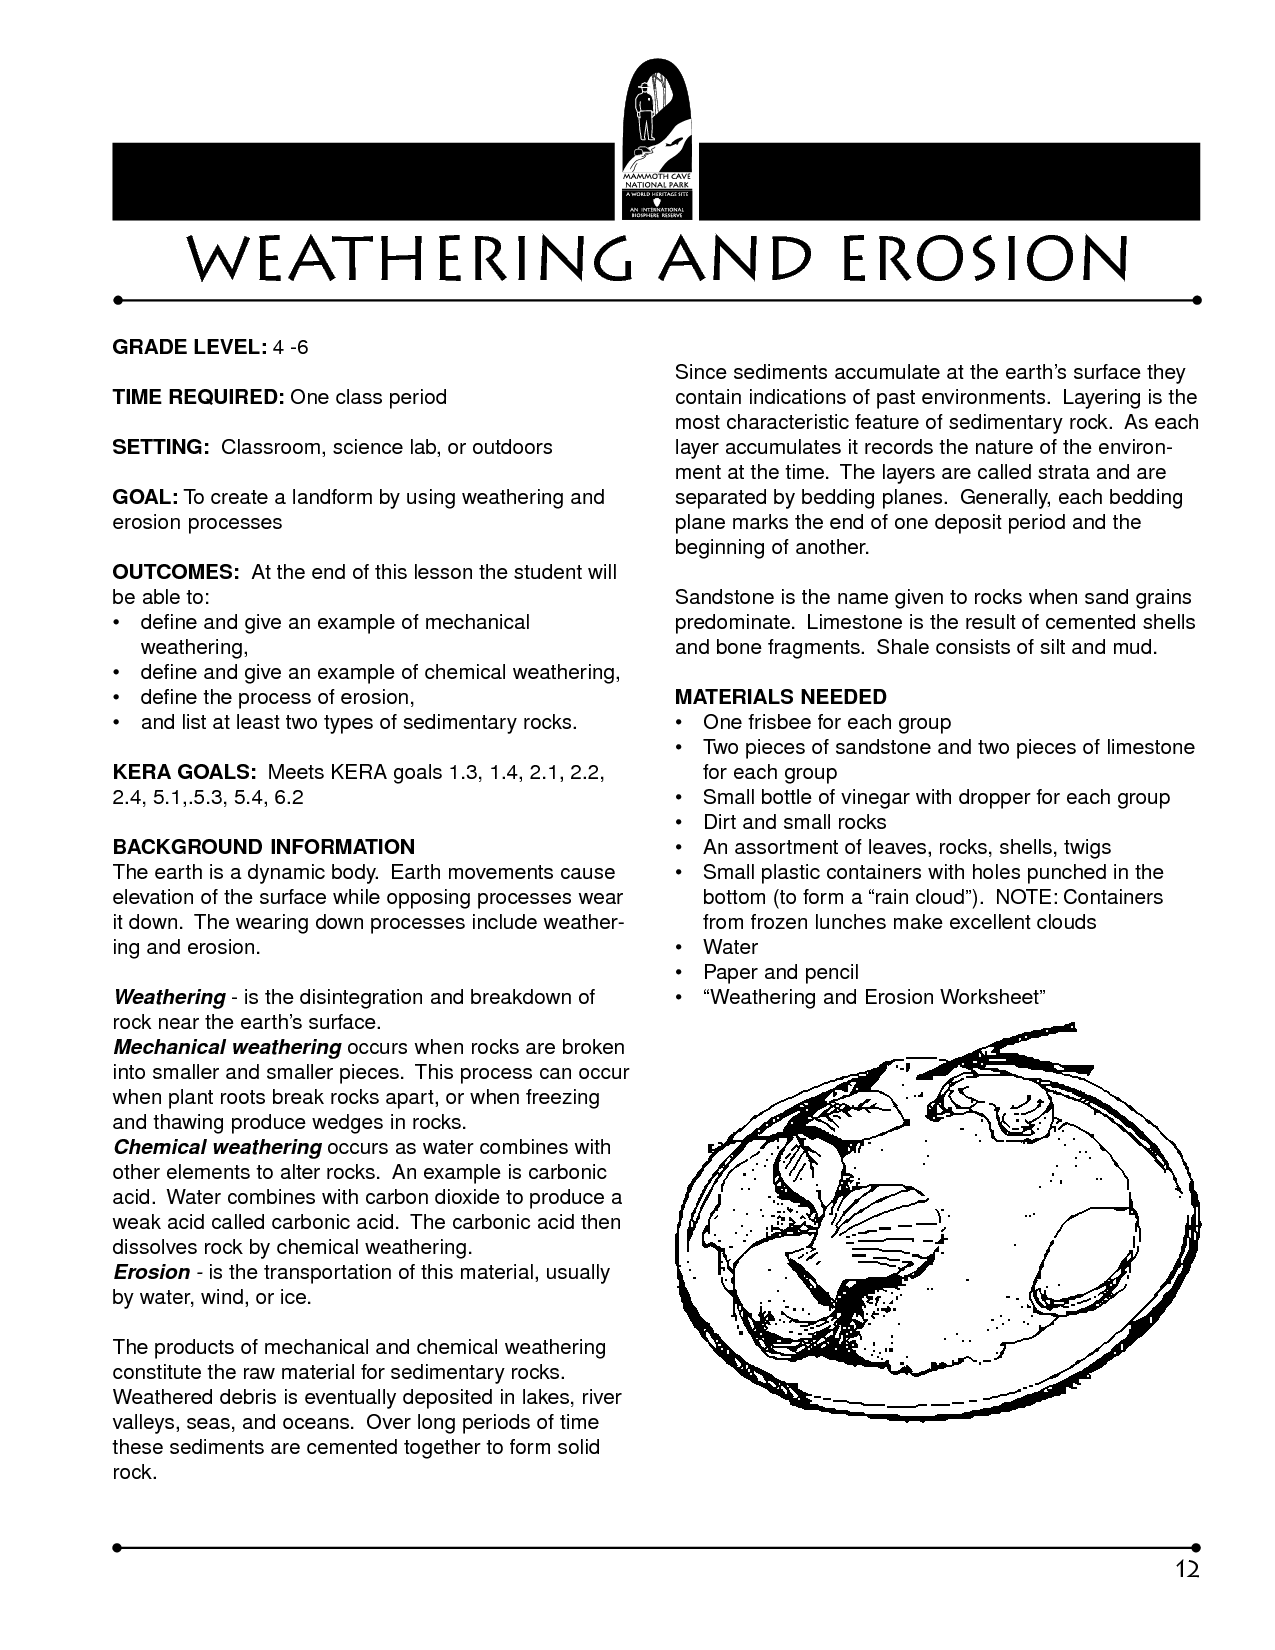 9 Best Images Of Weathering And Erosion Worksheets 4th Grade